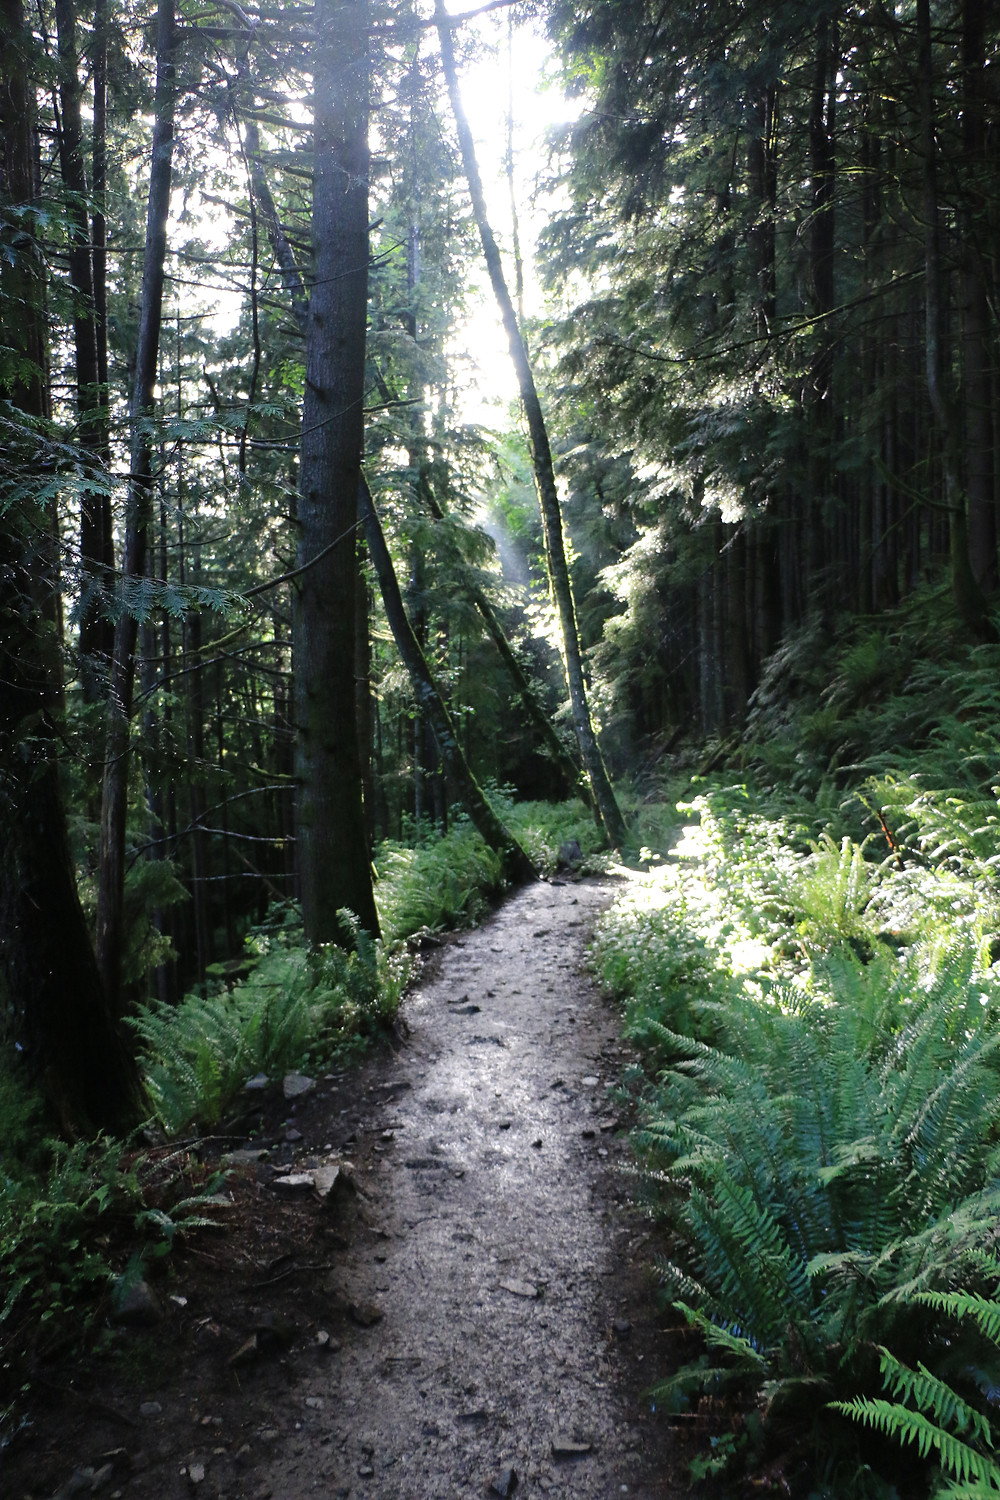 Ferns and dense trees surrounding Dirty Harry's Balcony trail